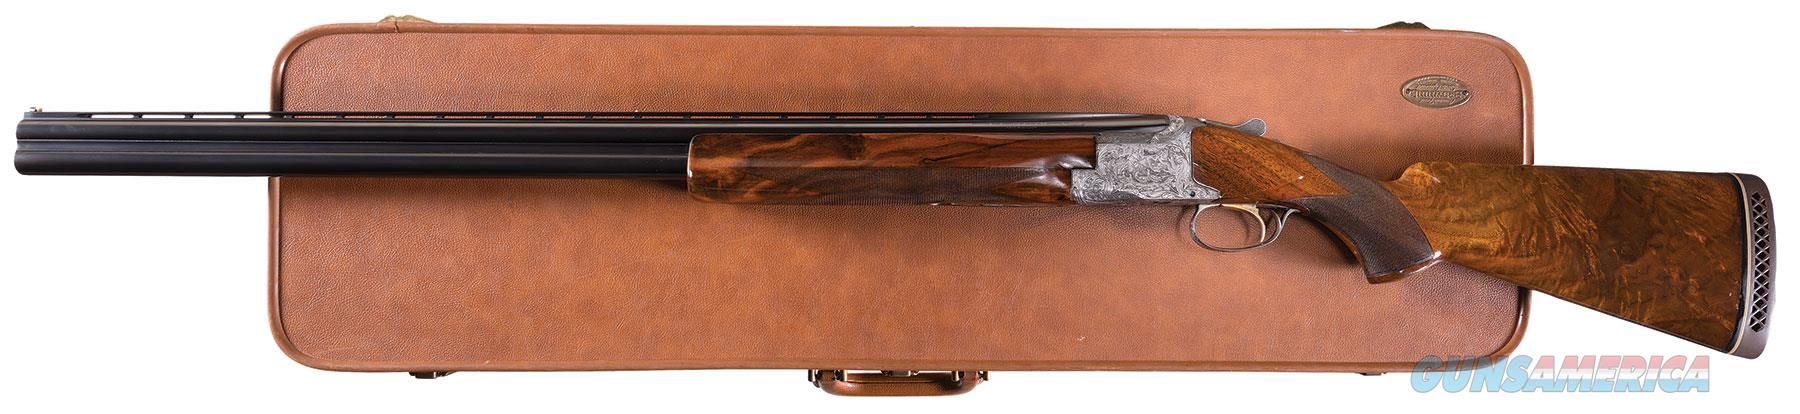 Factory Master Engraved Angelo Bee Signed Belgian Browning Diana Grade Superposed w/ case  Guns > Shotguns > Browning Shotguns > Over Unders > Belgian Manufacture